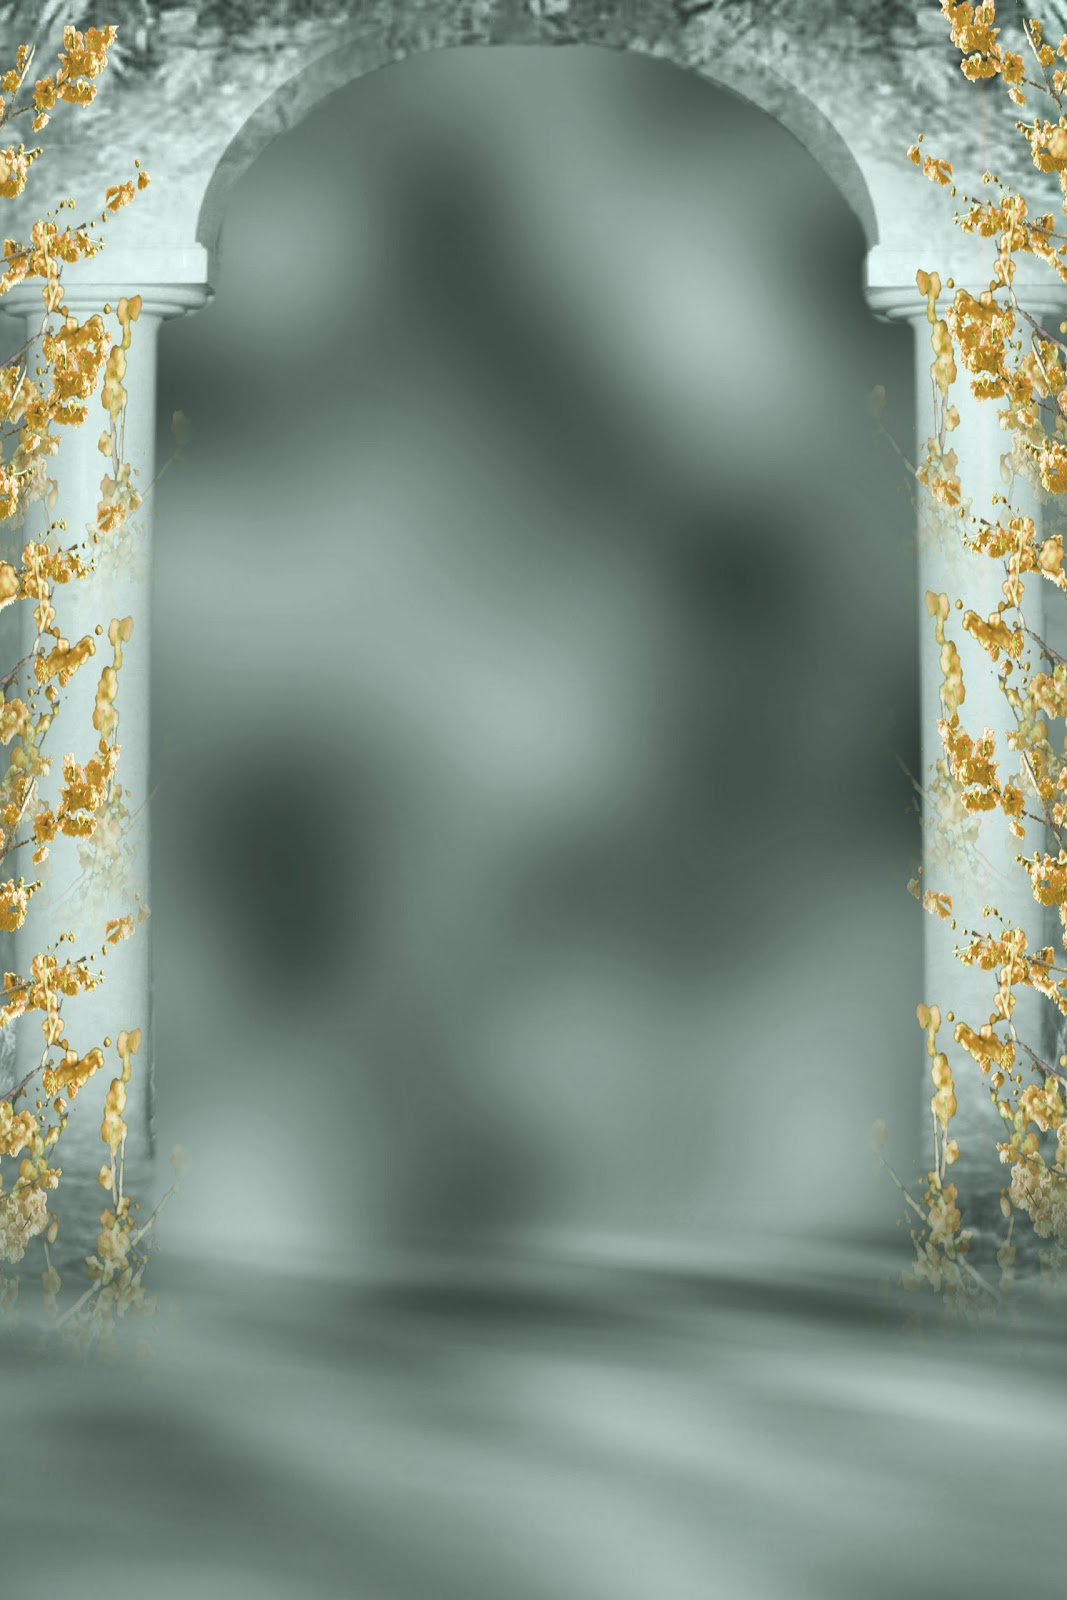 New Studio Background For Wedding Pics Edting Psd File